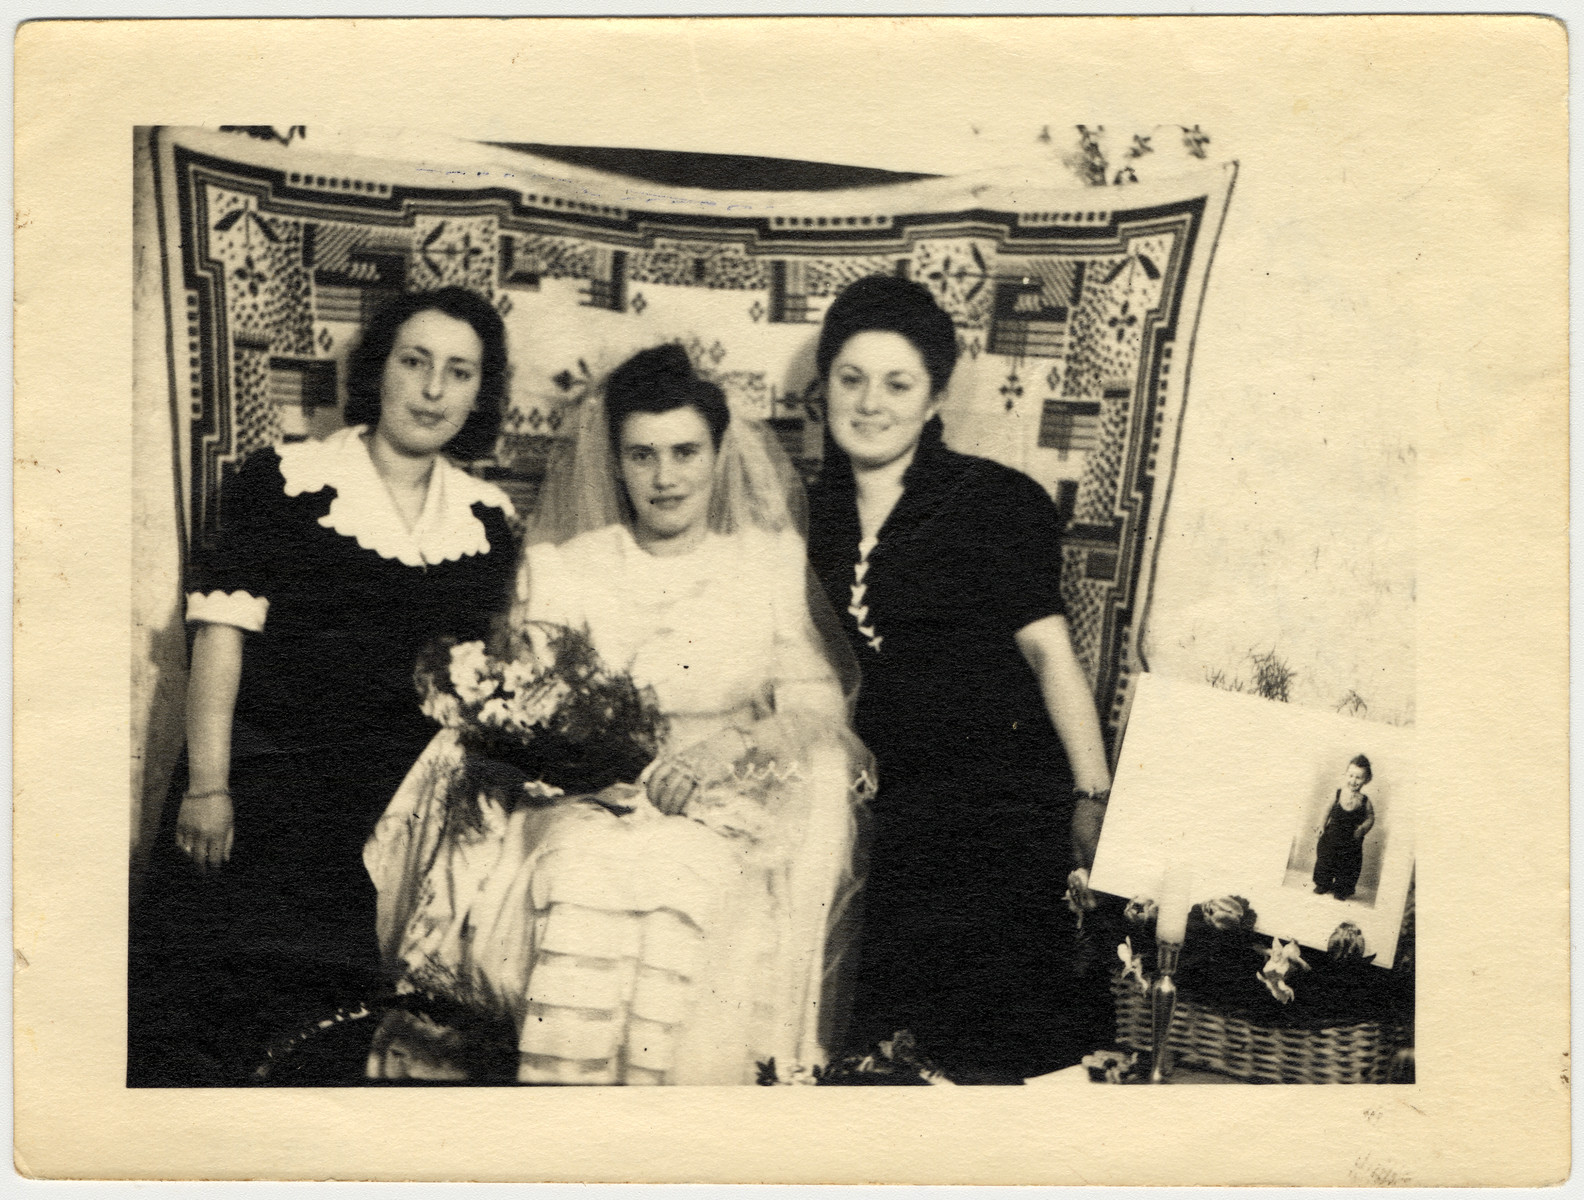 """Two women sit in attendance with a bride.    Shulamit Perlmutter is seated on the far right.  The original caption reads """"To the nice Musia, as an eternal memento, I give you this picture.  Moniek and Hanka""""."""